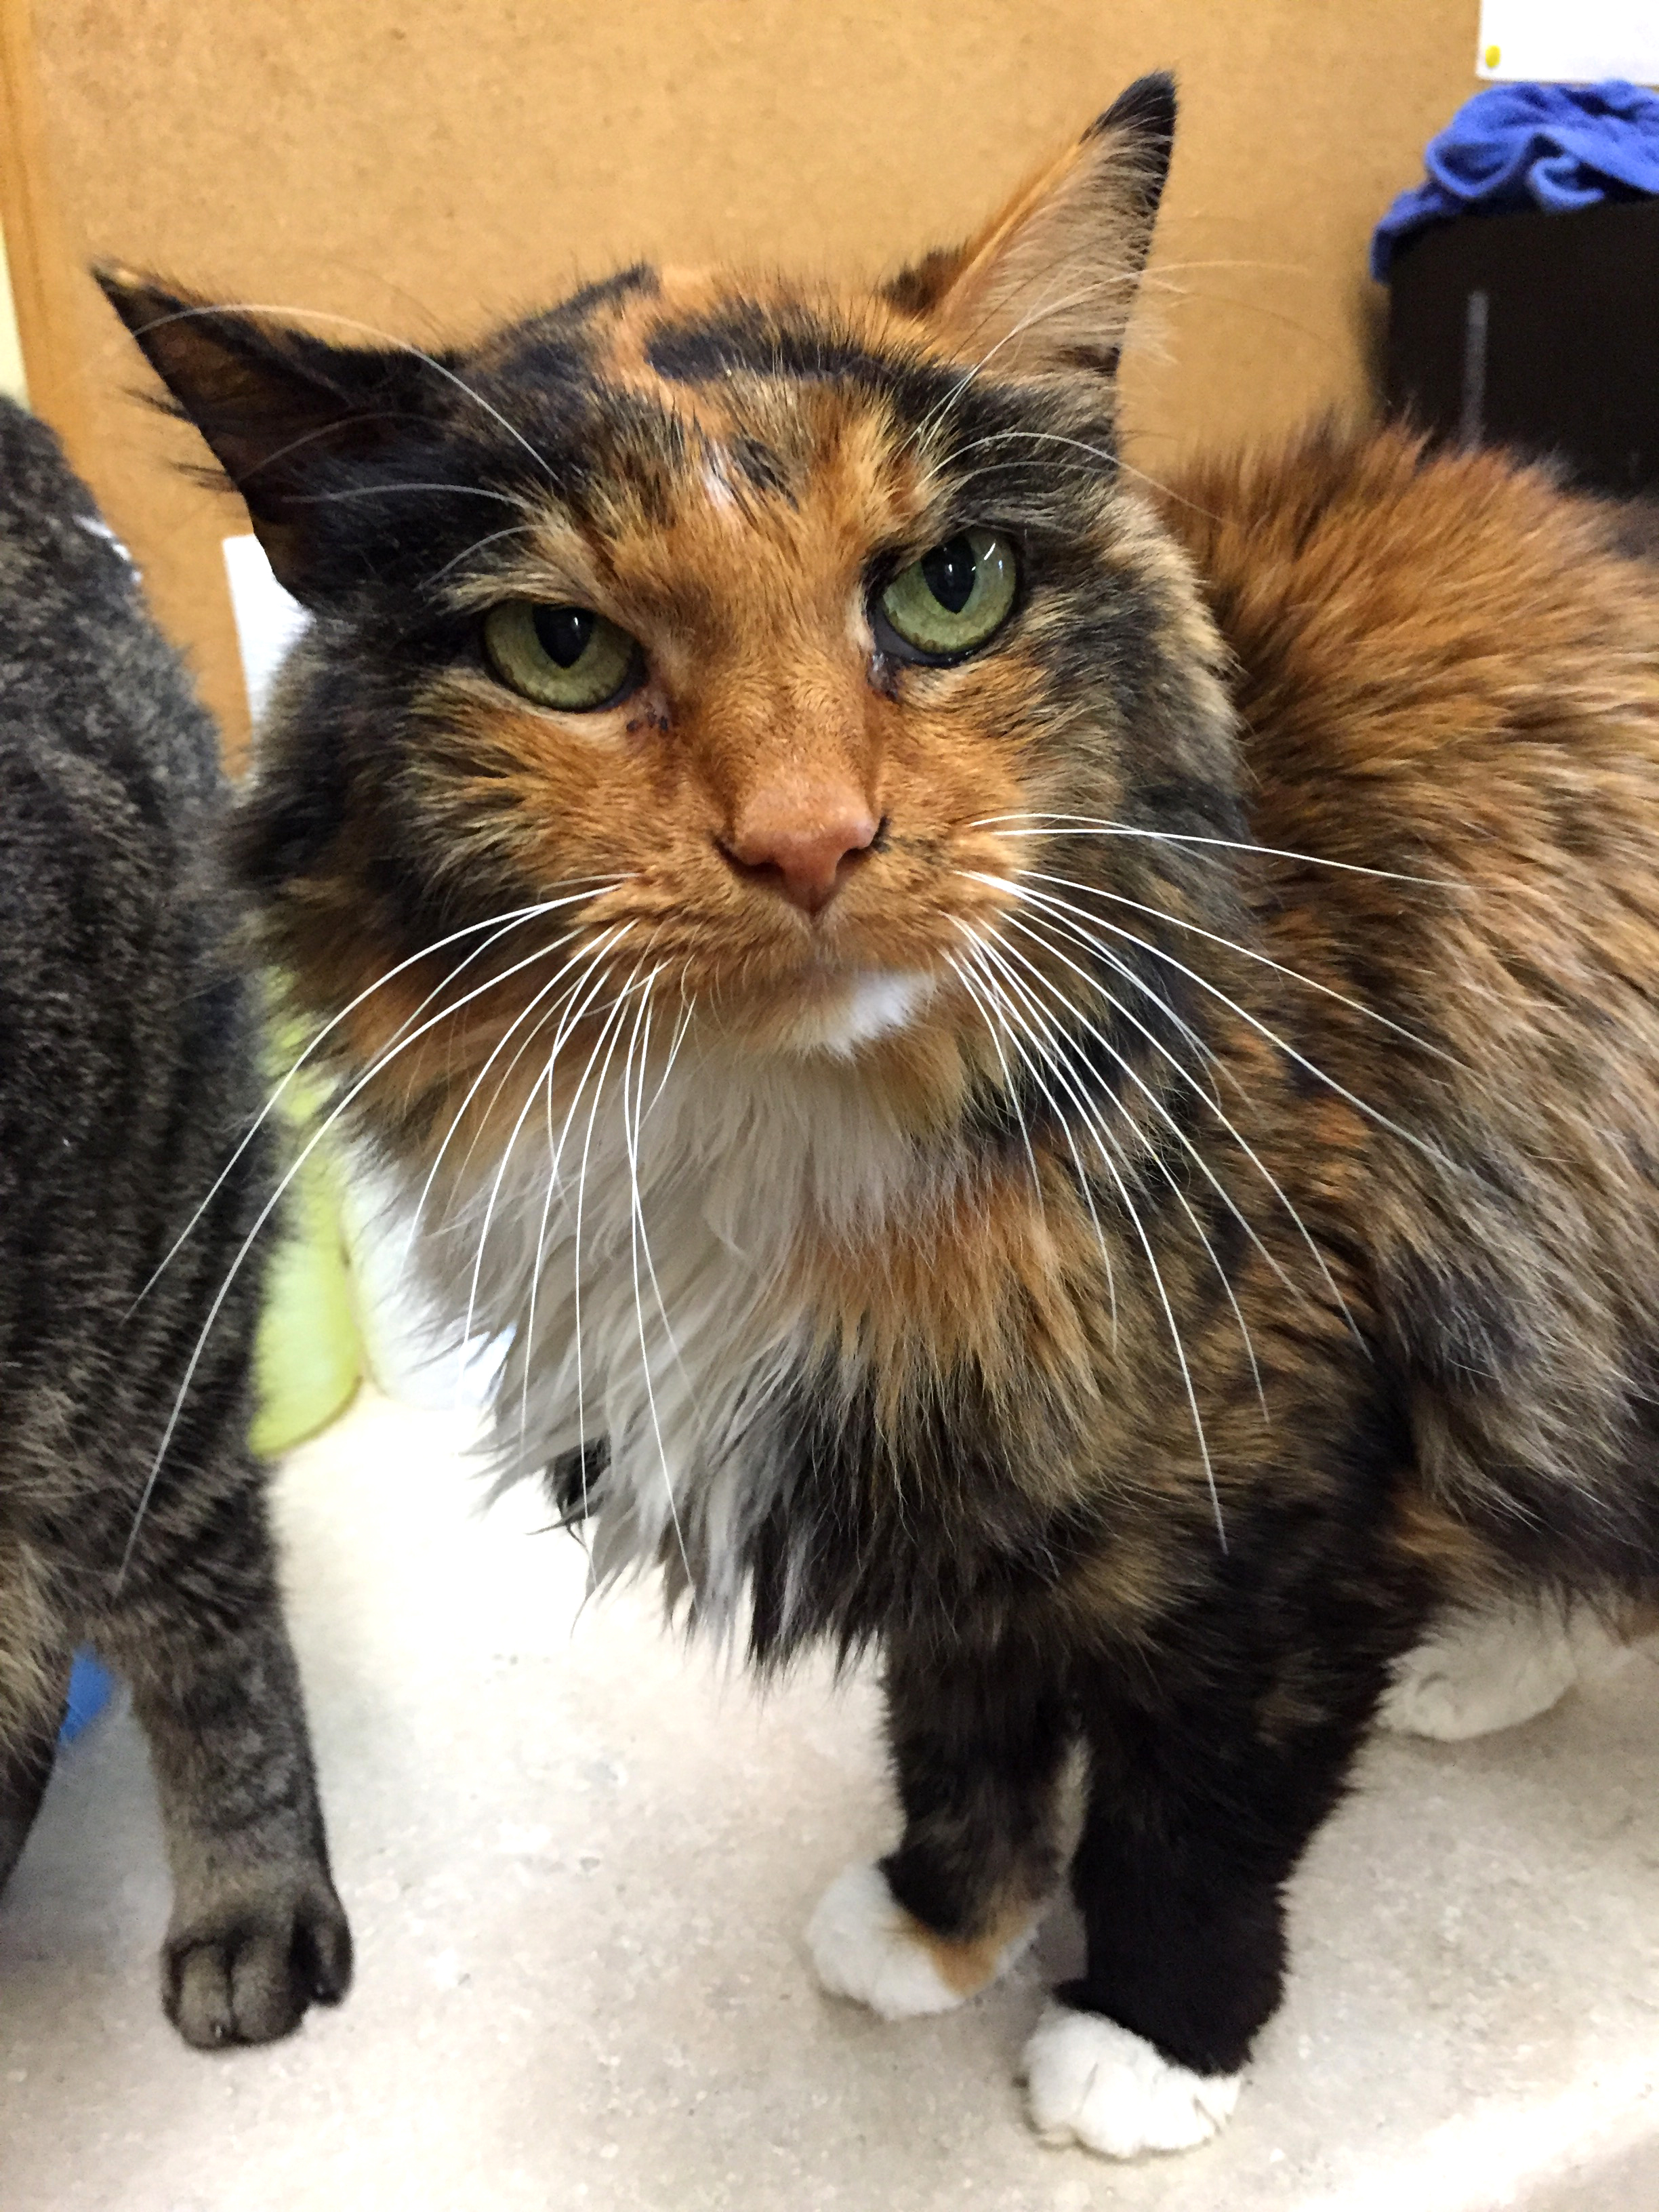 - Chloe was backed over by a car. She requires special medication to maintain her health due to a lazy bowel. Chloe is 12 years old.